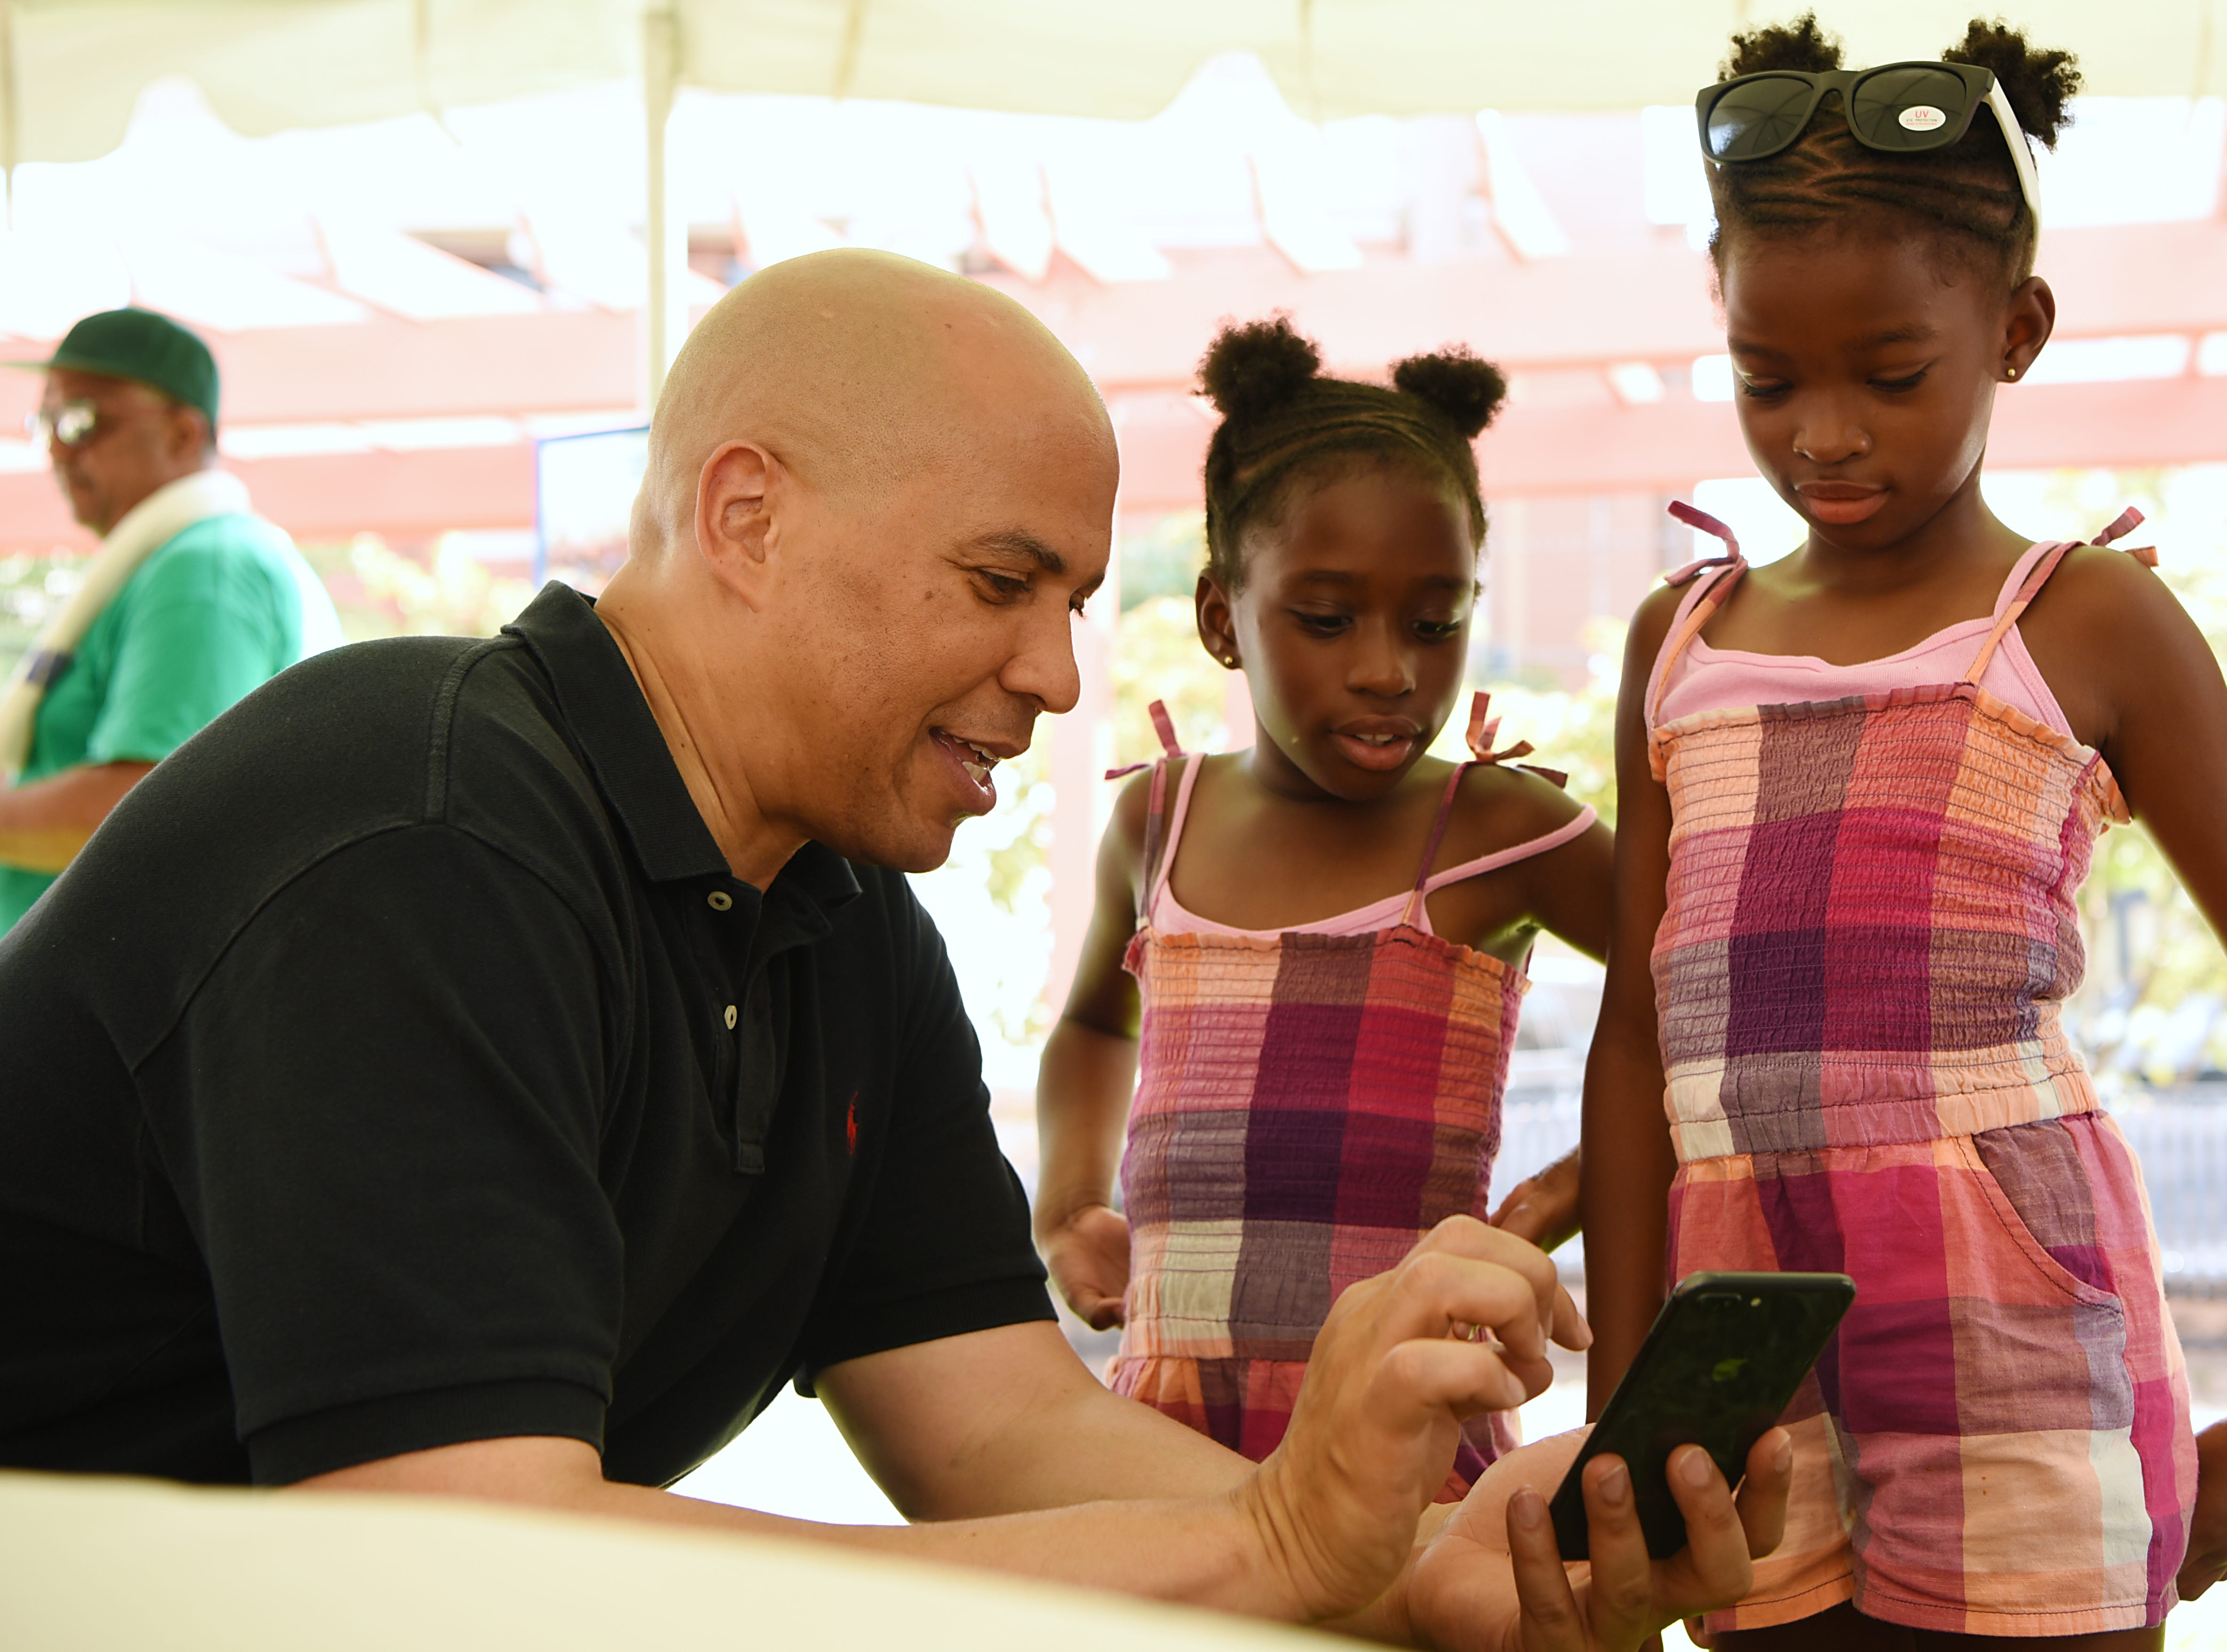 Senator Cory Booker get approval from Oliva and Camille, seven year old twins from Teaneck, after taking a selfie during the Fair Housing Council of Northern New Jersey picnic in Hackensack on Friday August 10, 2018.